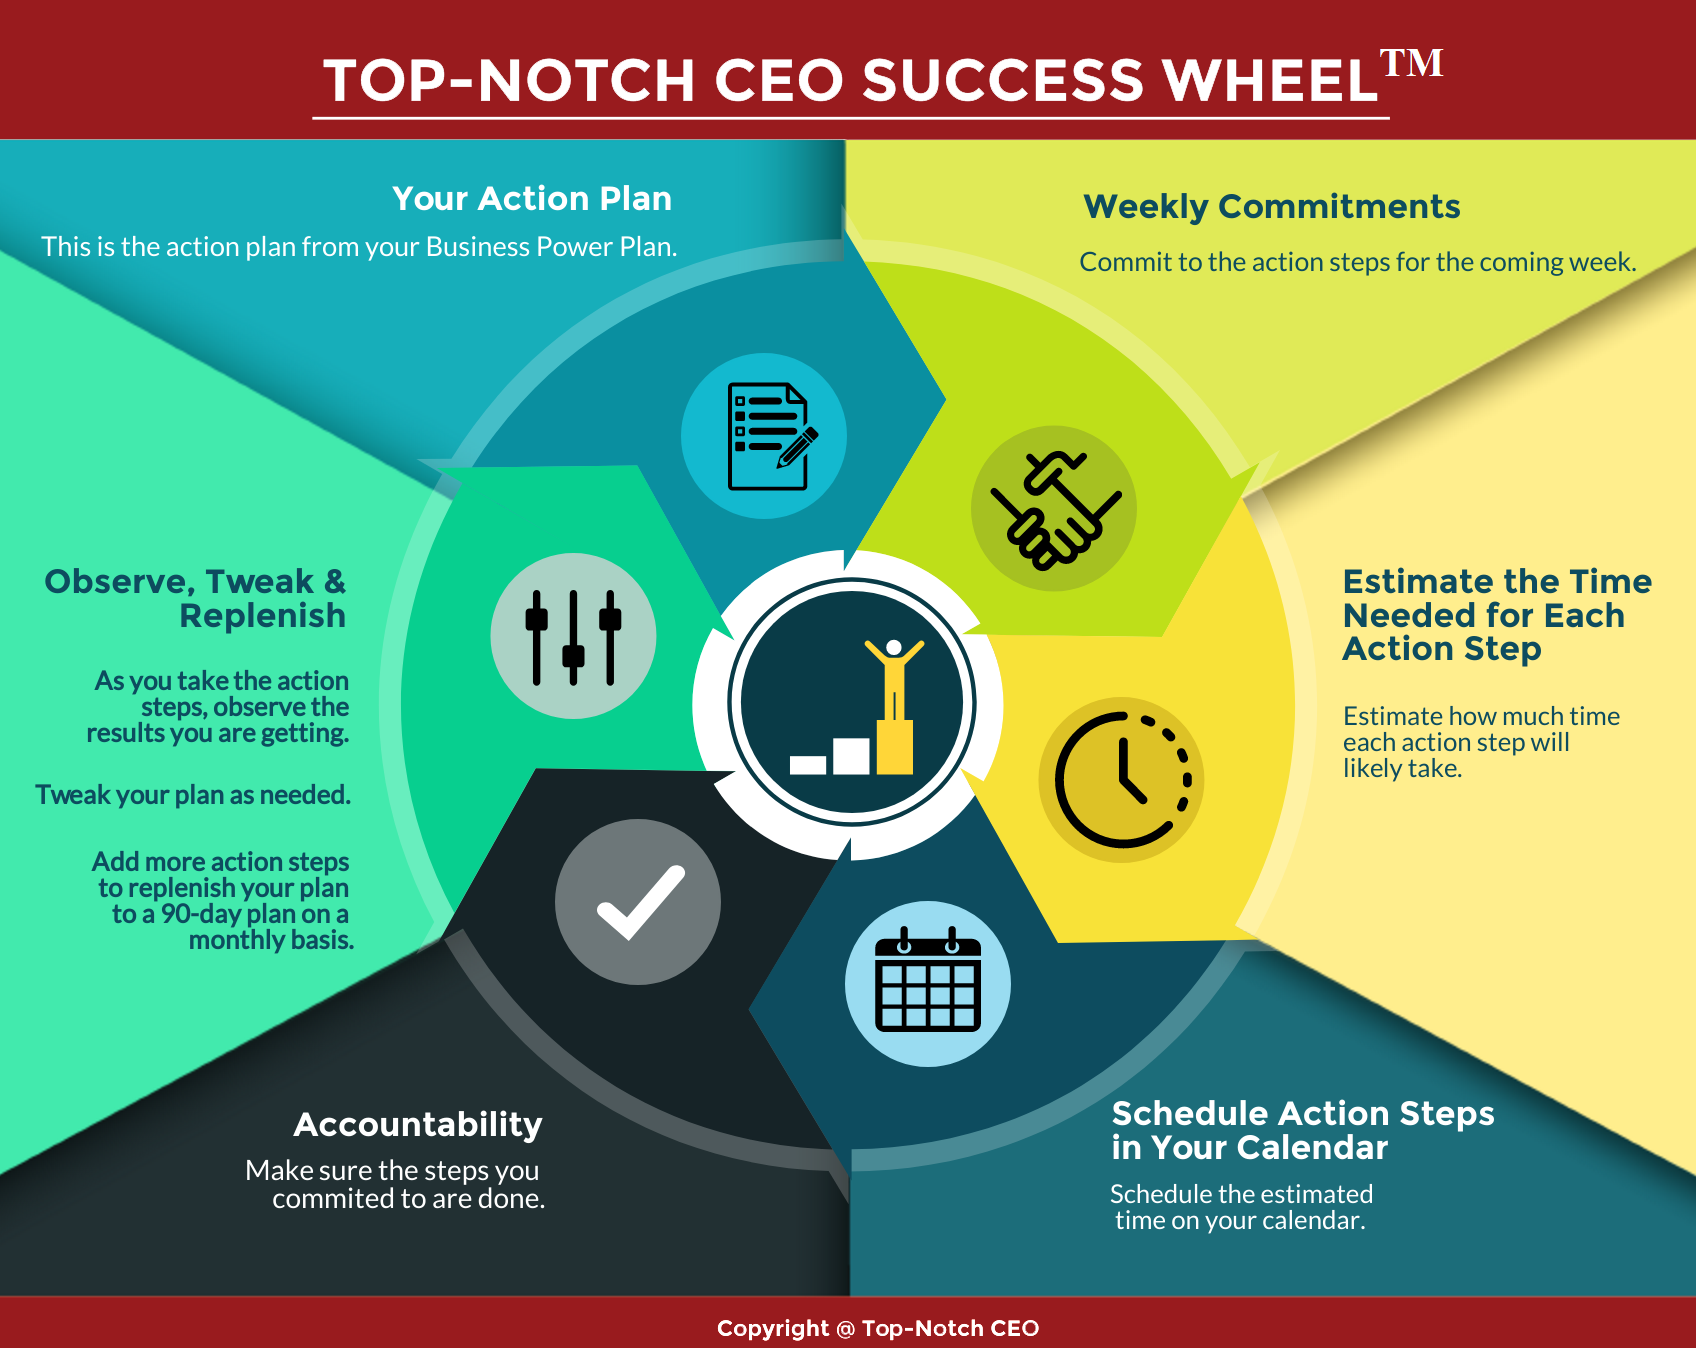 TNCEO Success Wheel 20181121 with TM